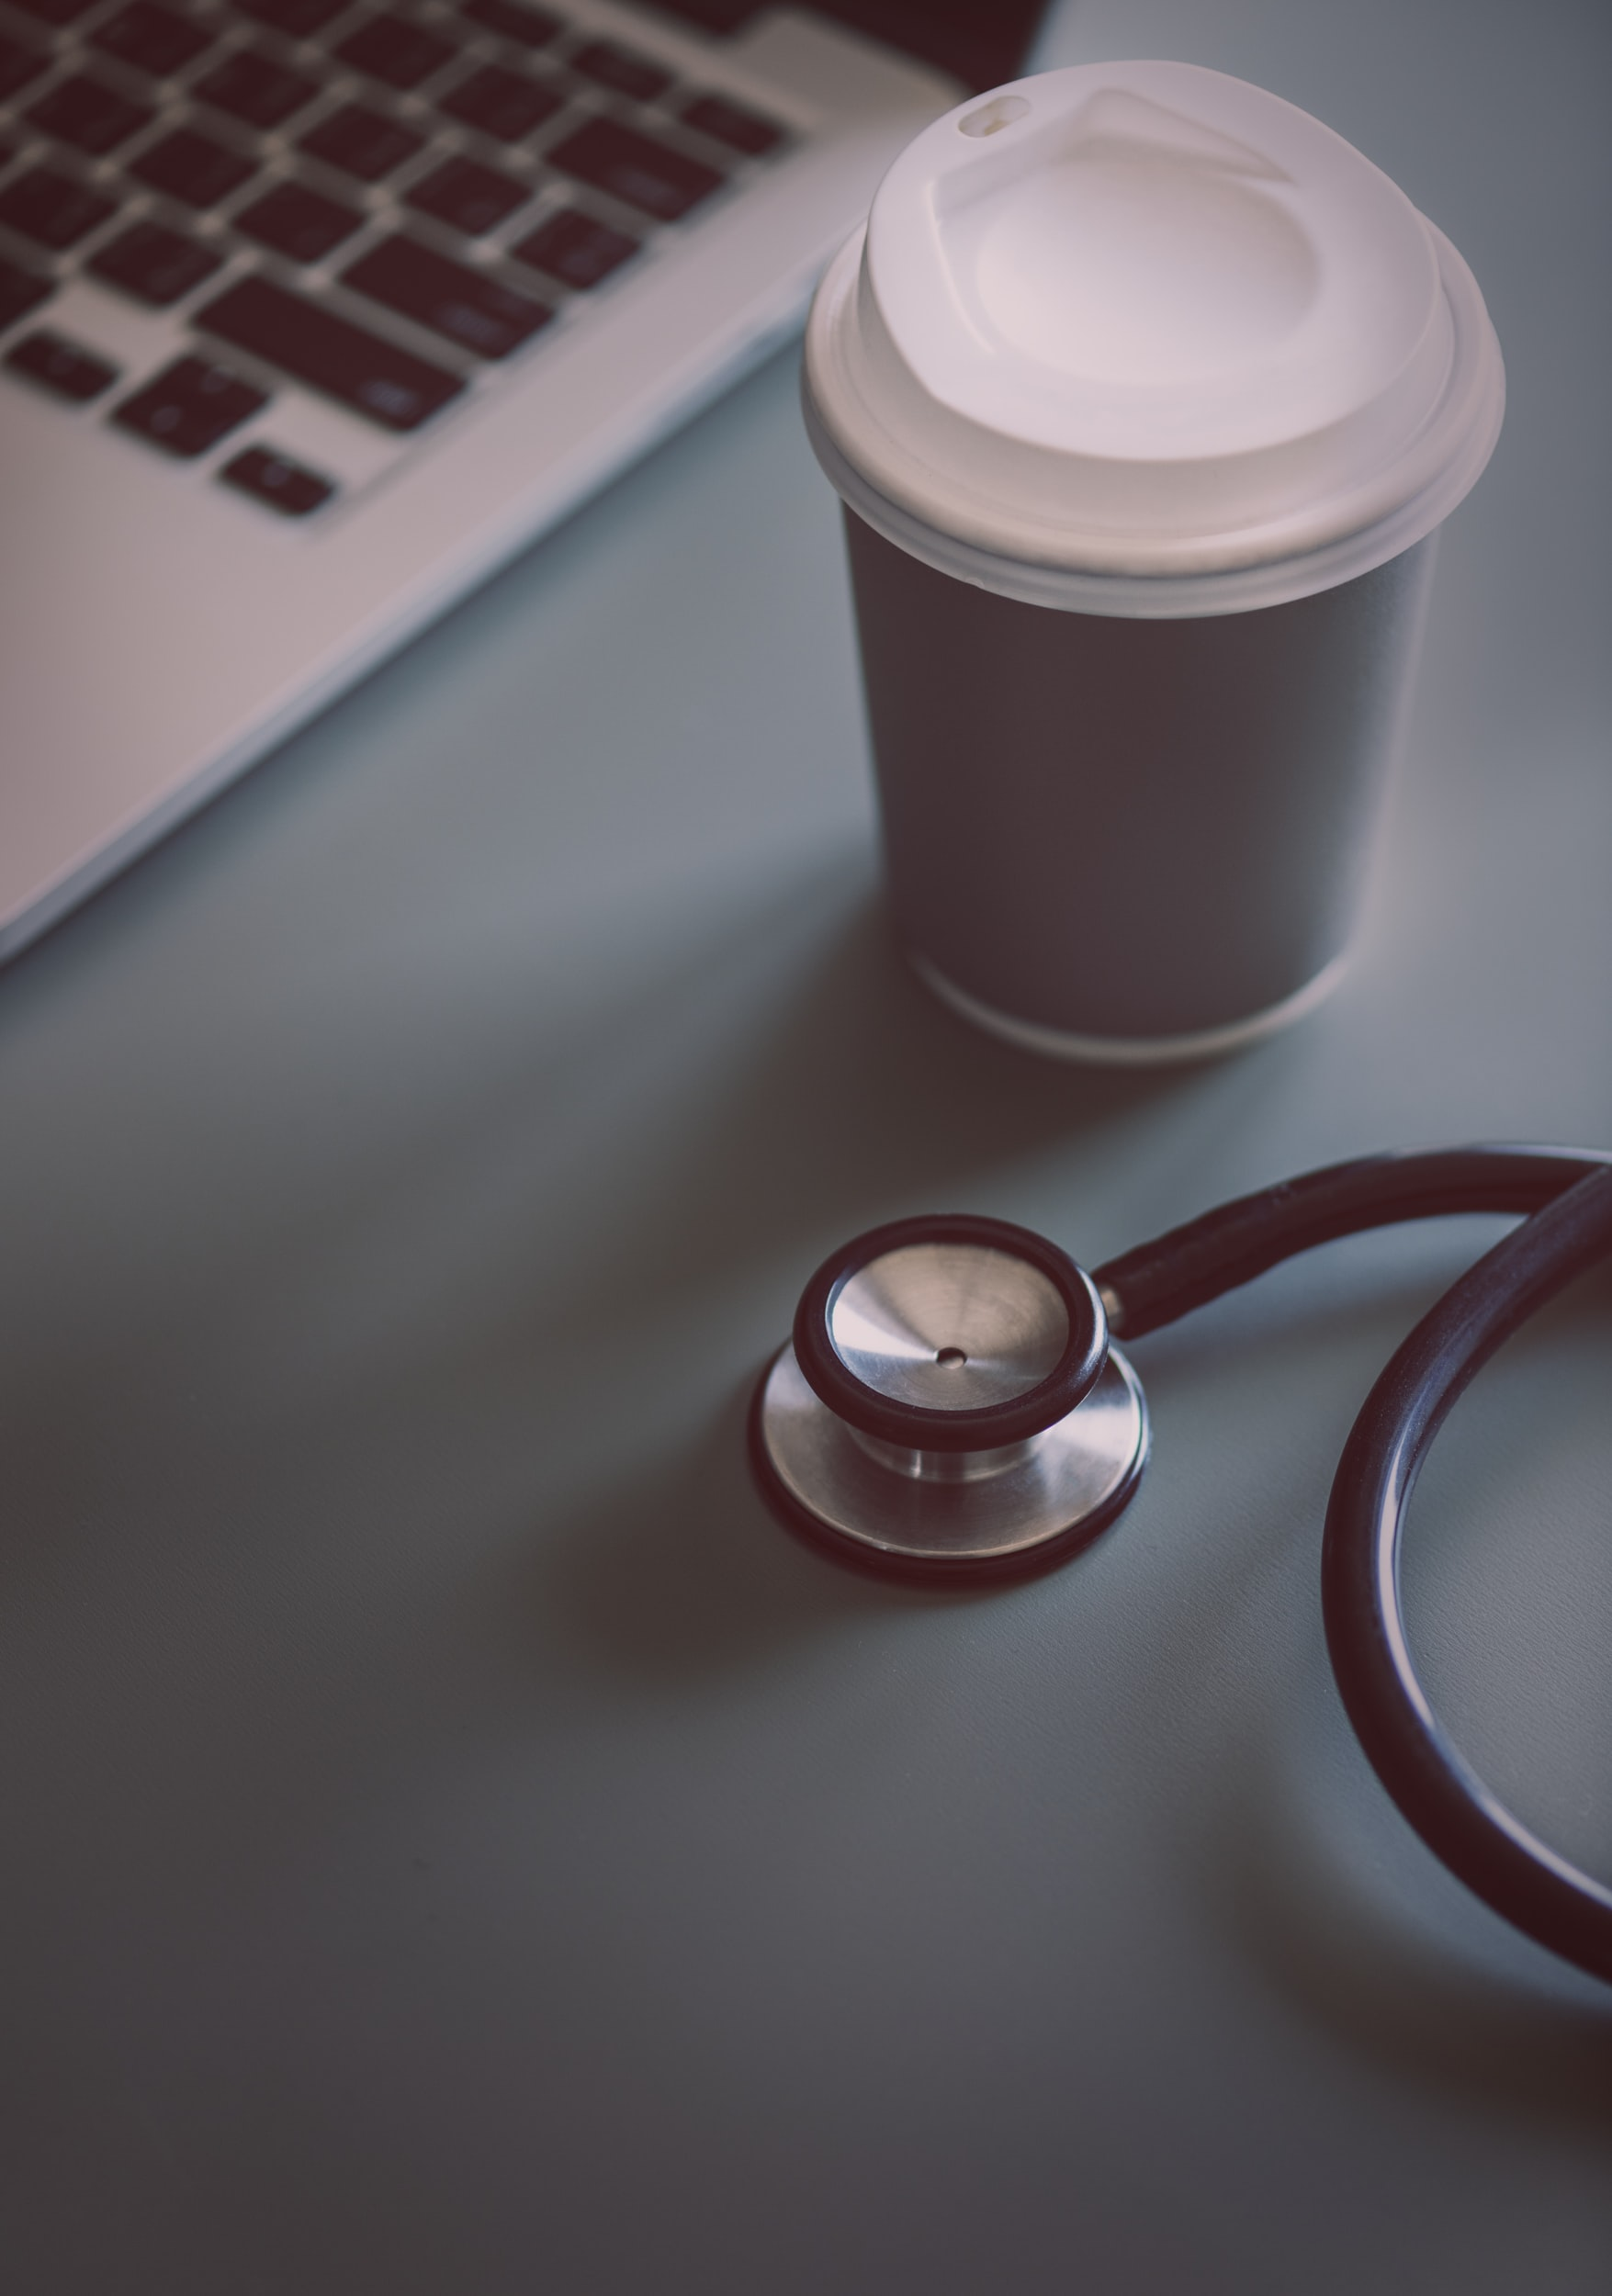 stethoscope beside coffee cup